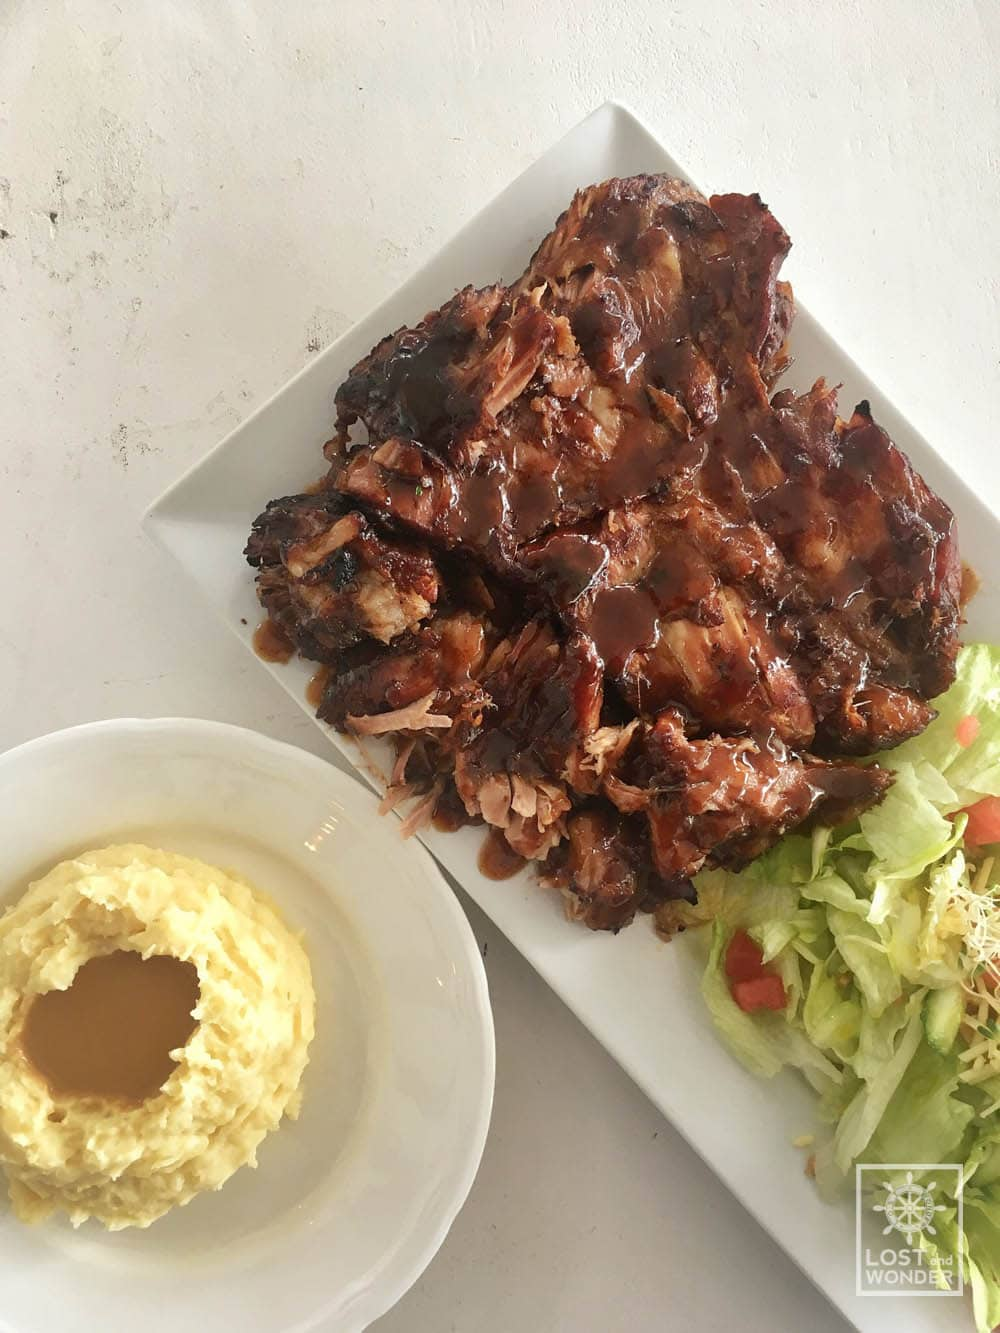 Photo of Lomo ribs in Baguio City - Canto Restaurant